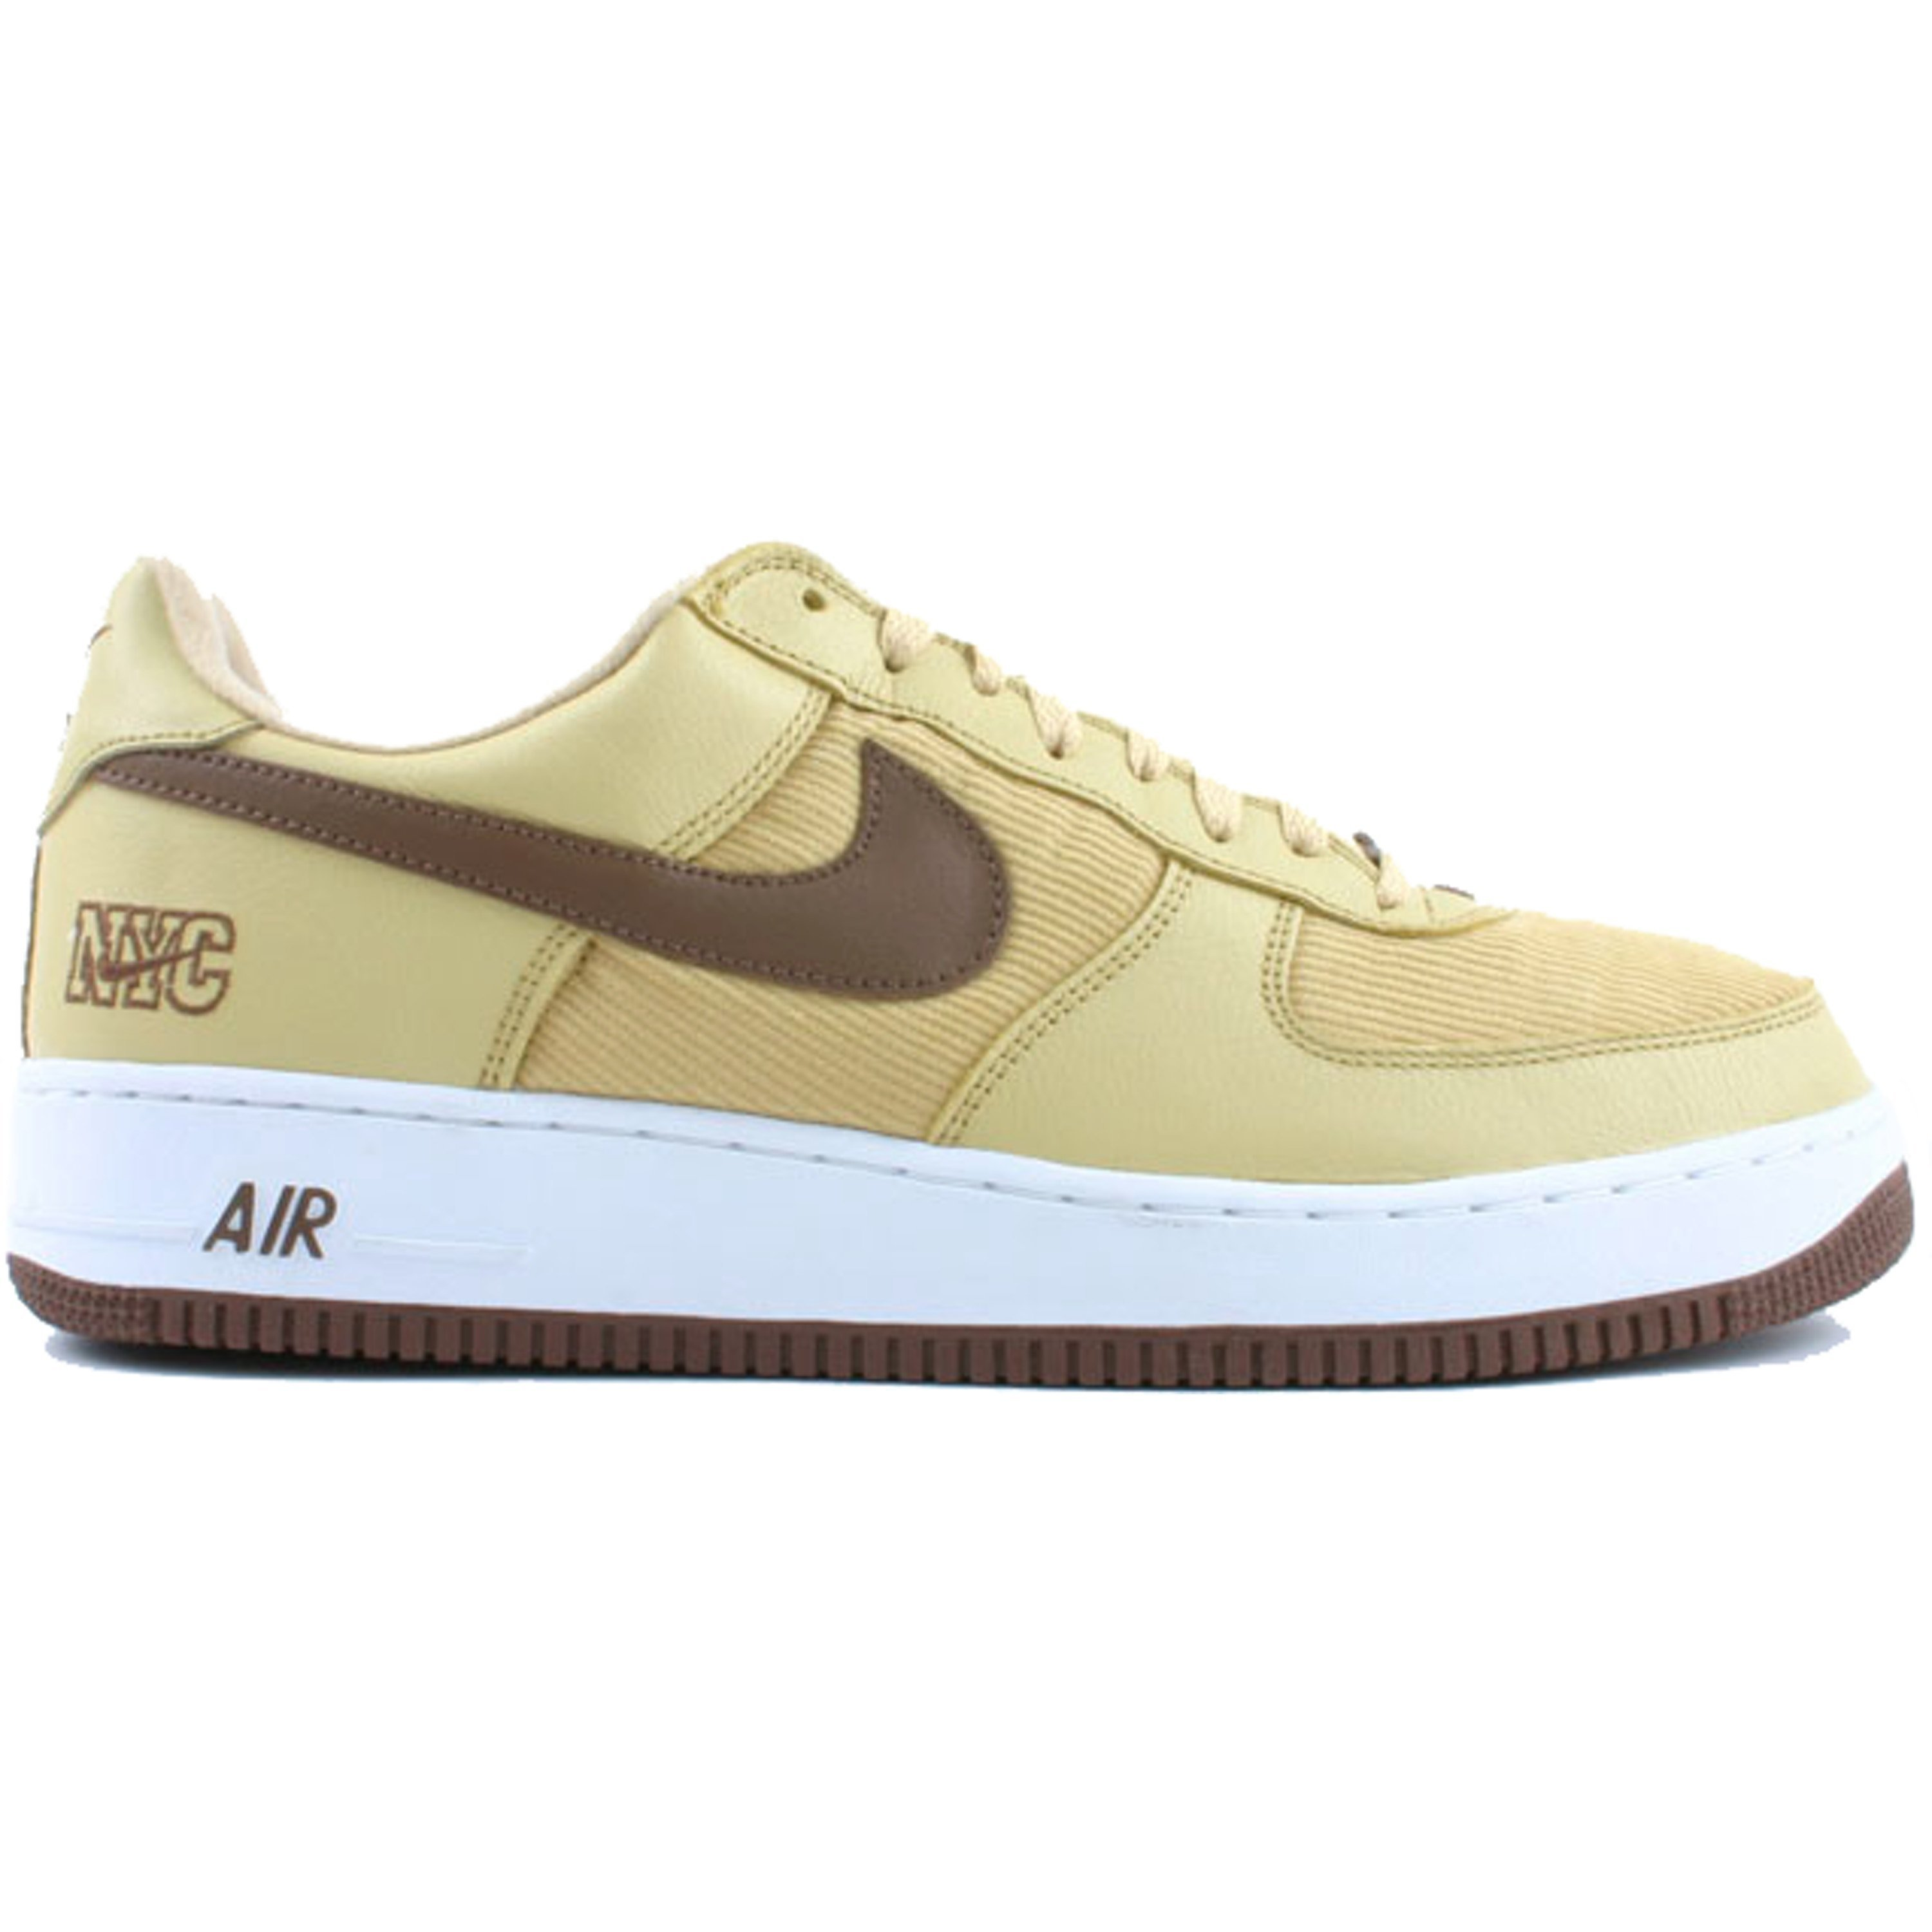 Nike Air Force 1 Low NYC Corduroy Gold Dust (306509-721)